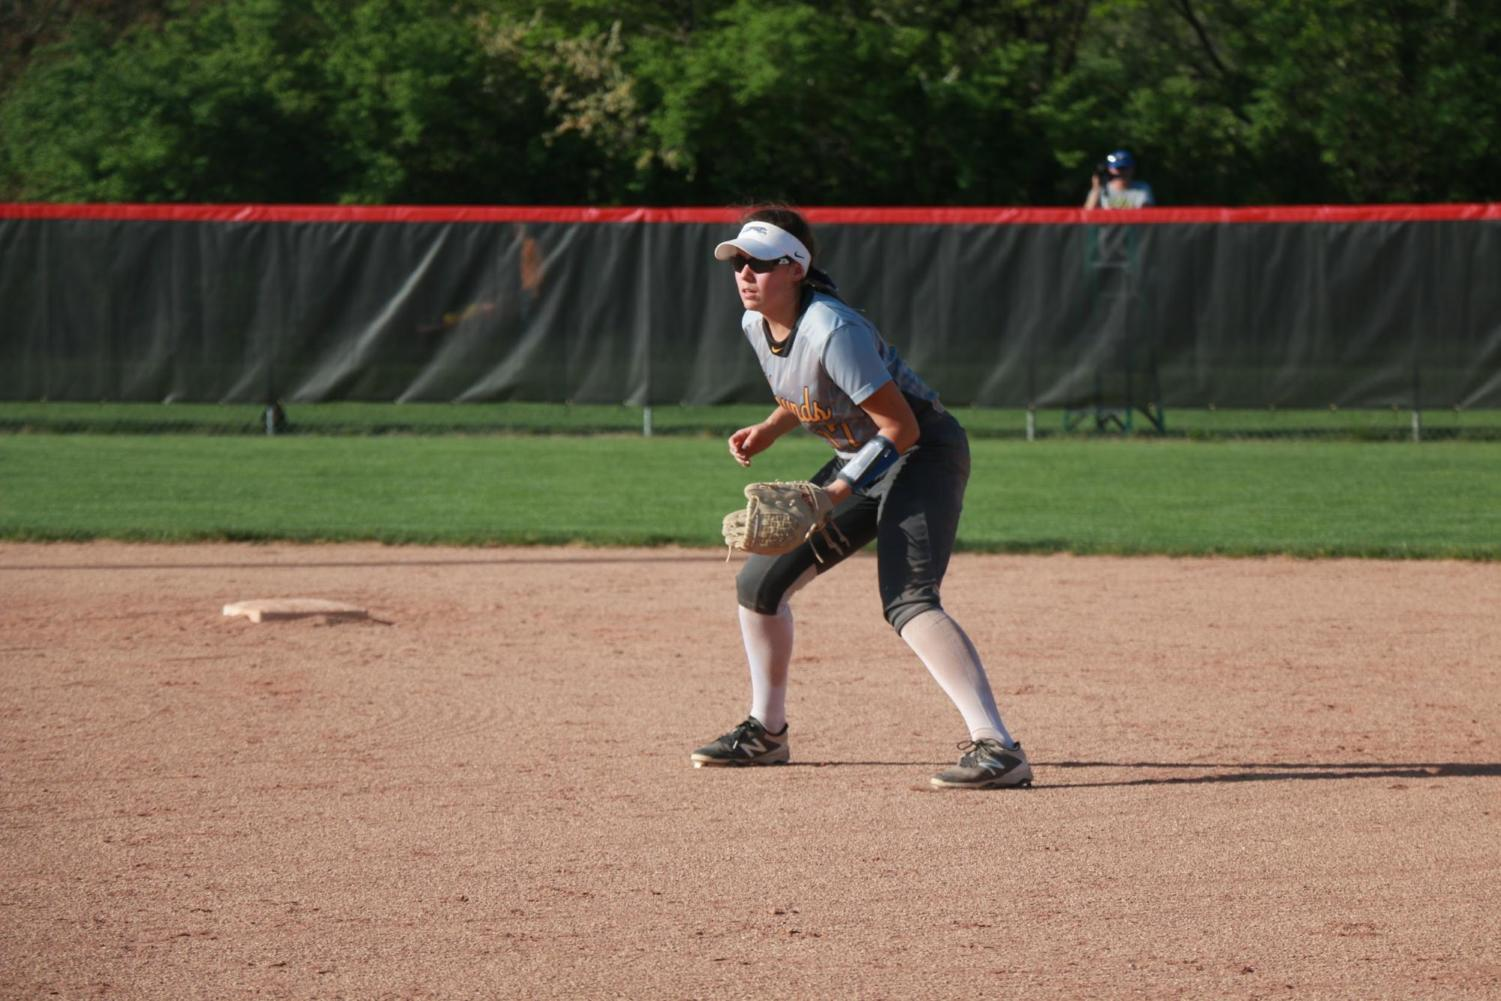 Sophomore Brooke Bair gets in a ready position at second base. Bair broke her leg at the game against North Central on May 8 by colliding with right fielder Ella Greenawald, both trying to catch a fly ball.